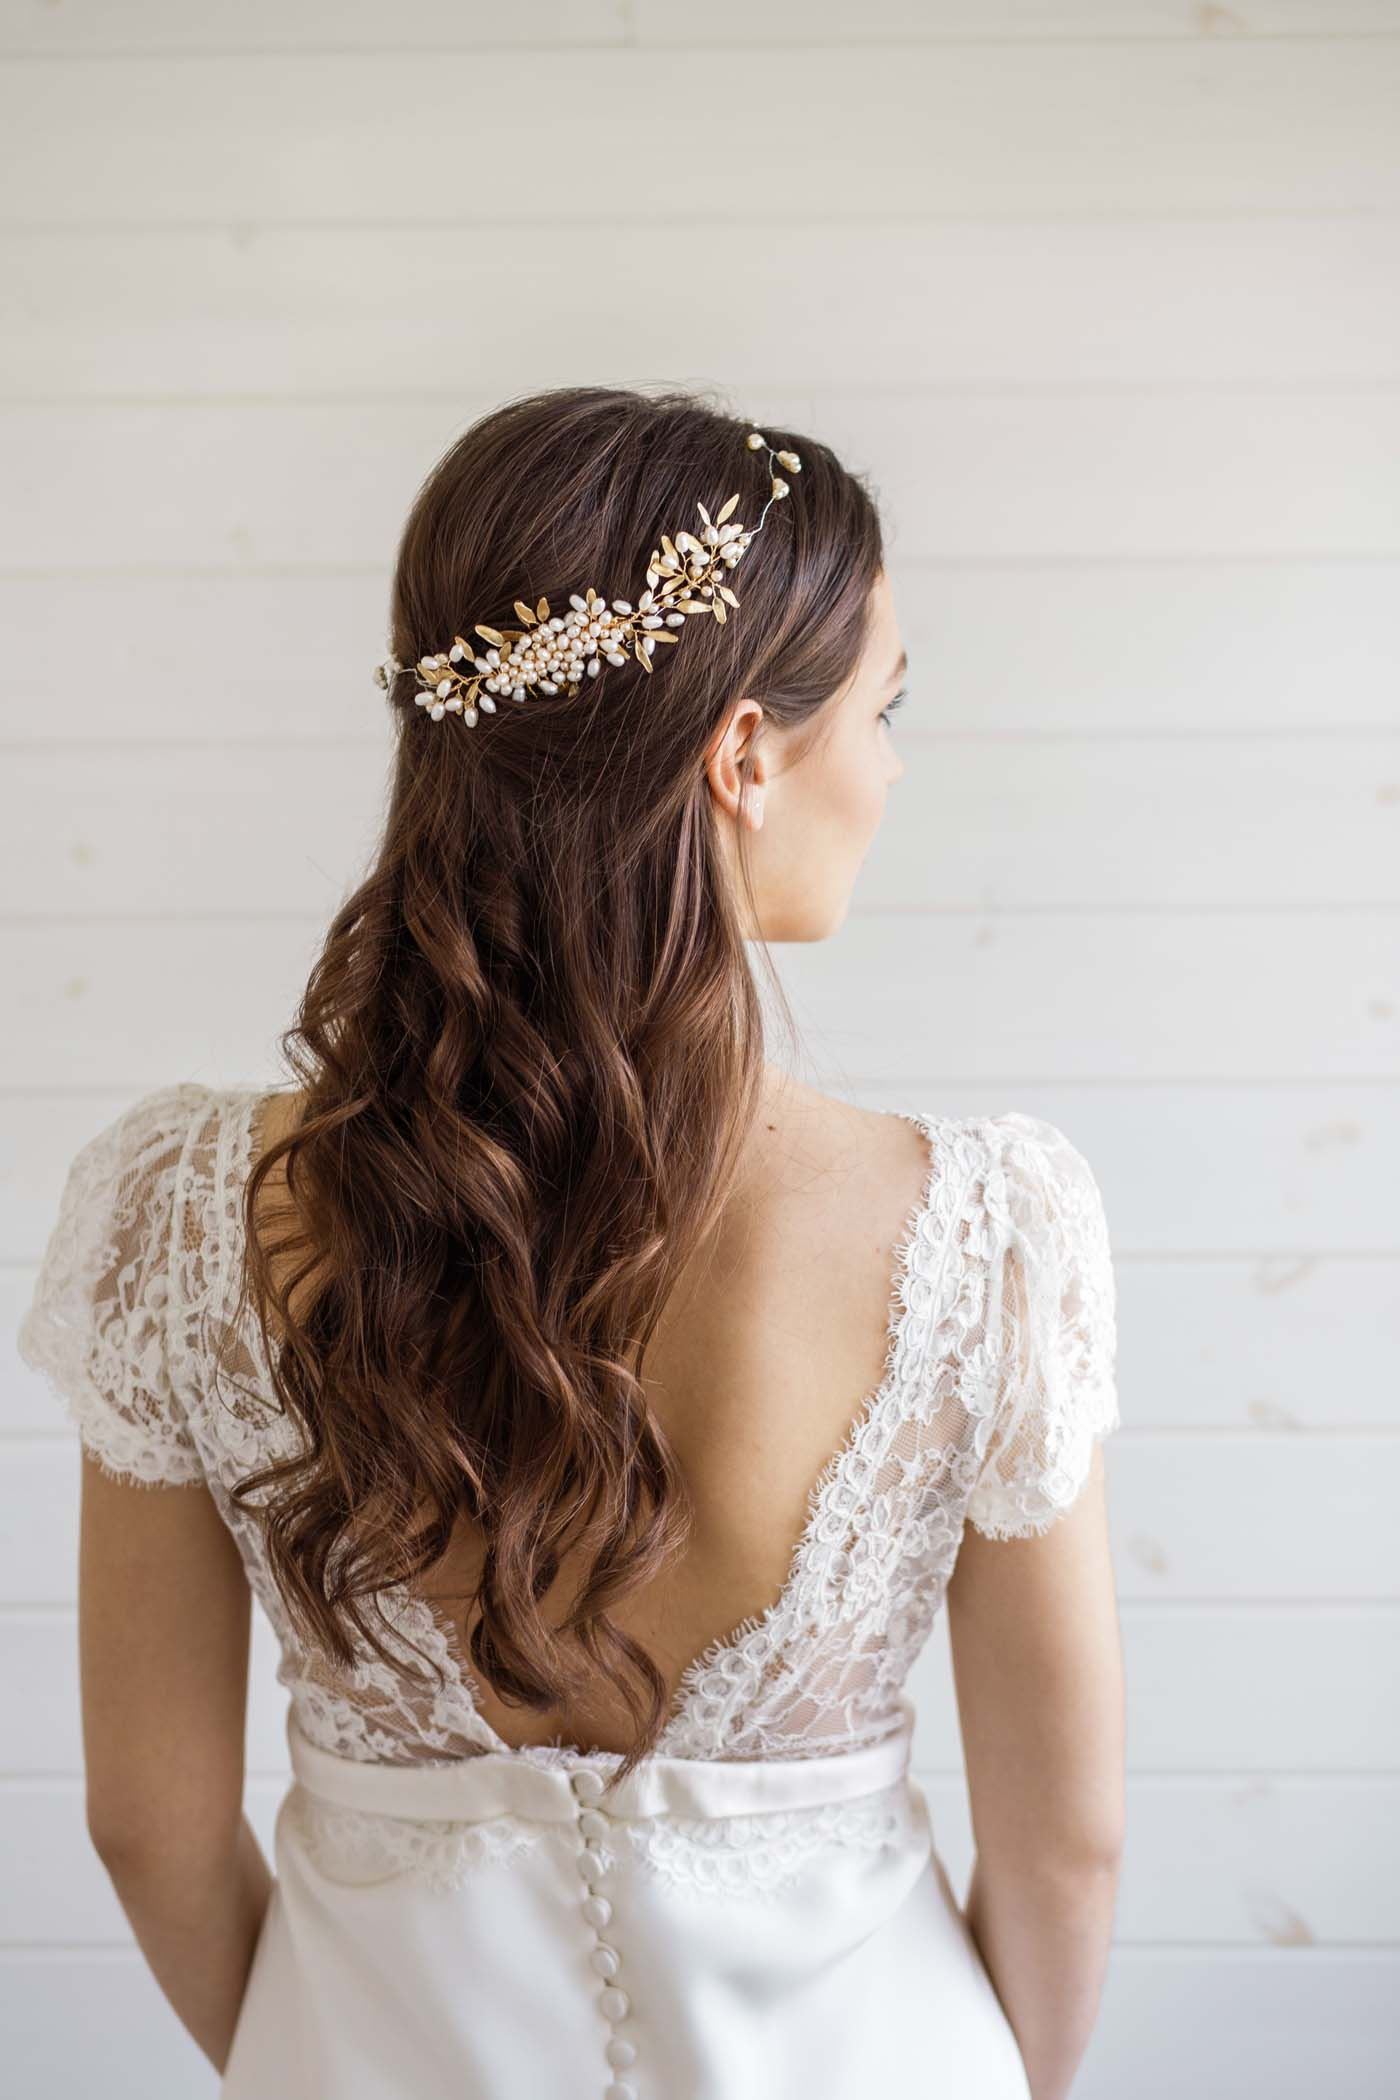 Wedding Hair Accessories | Bridal Headpieces | London Shop ...